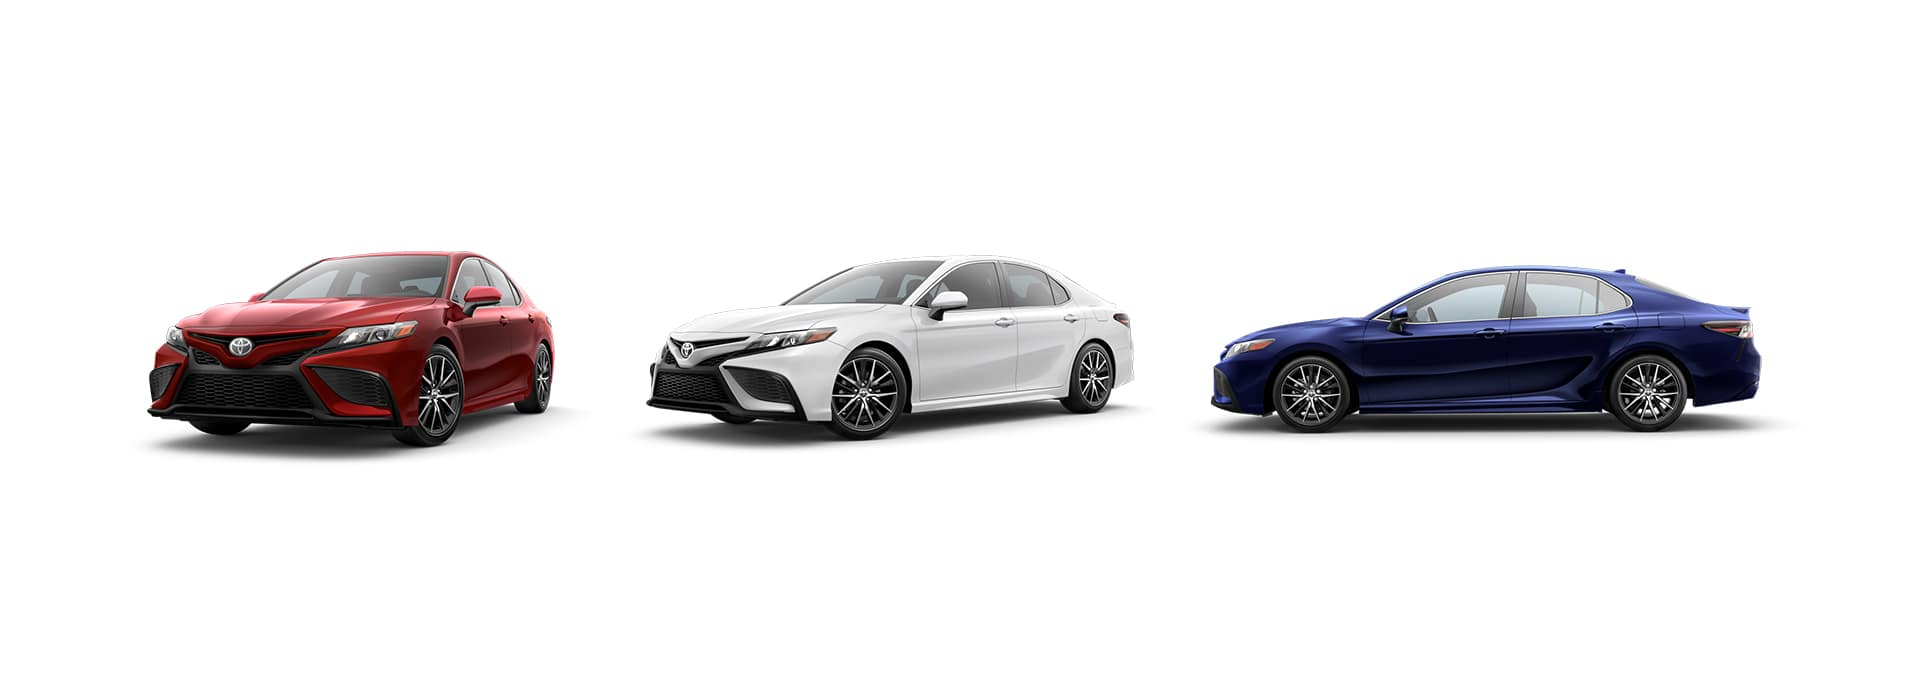 2021 Toyota Camry versus 2021 Honda Accord Comparison at Lancaster Toyota in East Petersburg | 2021 Toyota Camry in 7/8, 3/4, and profile view